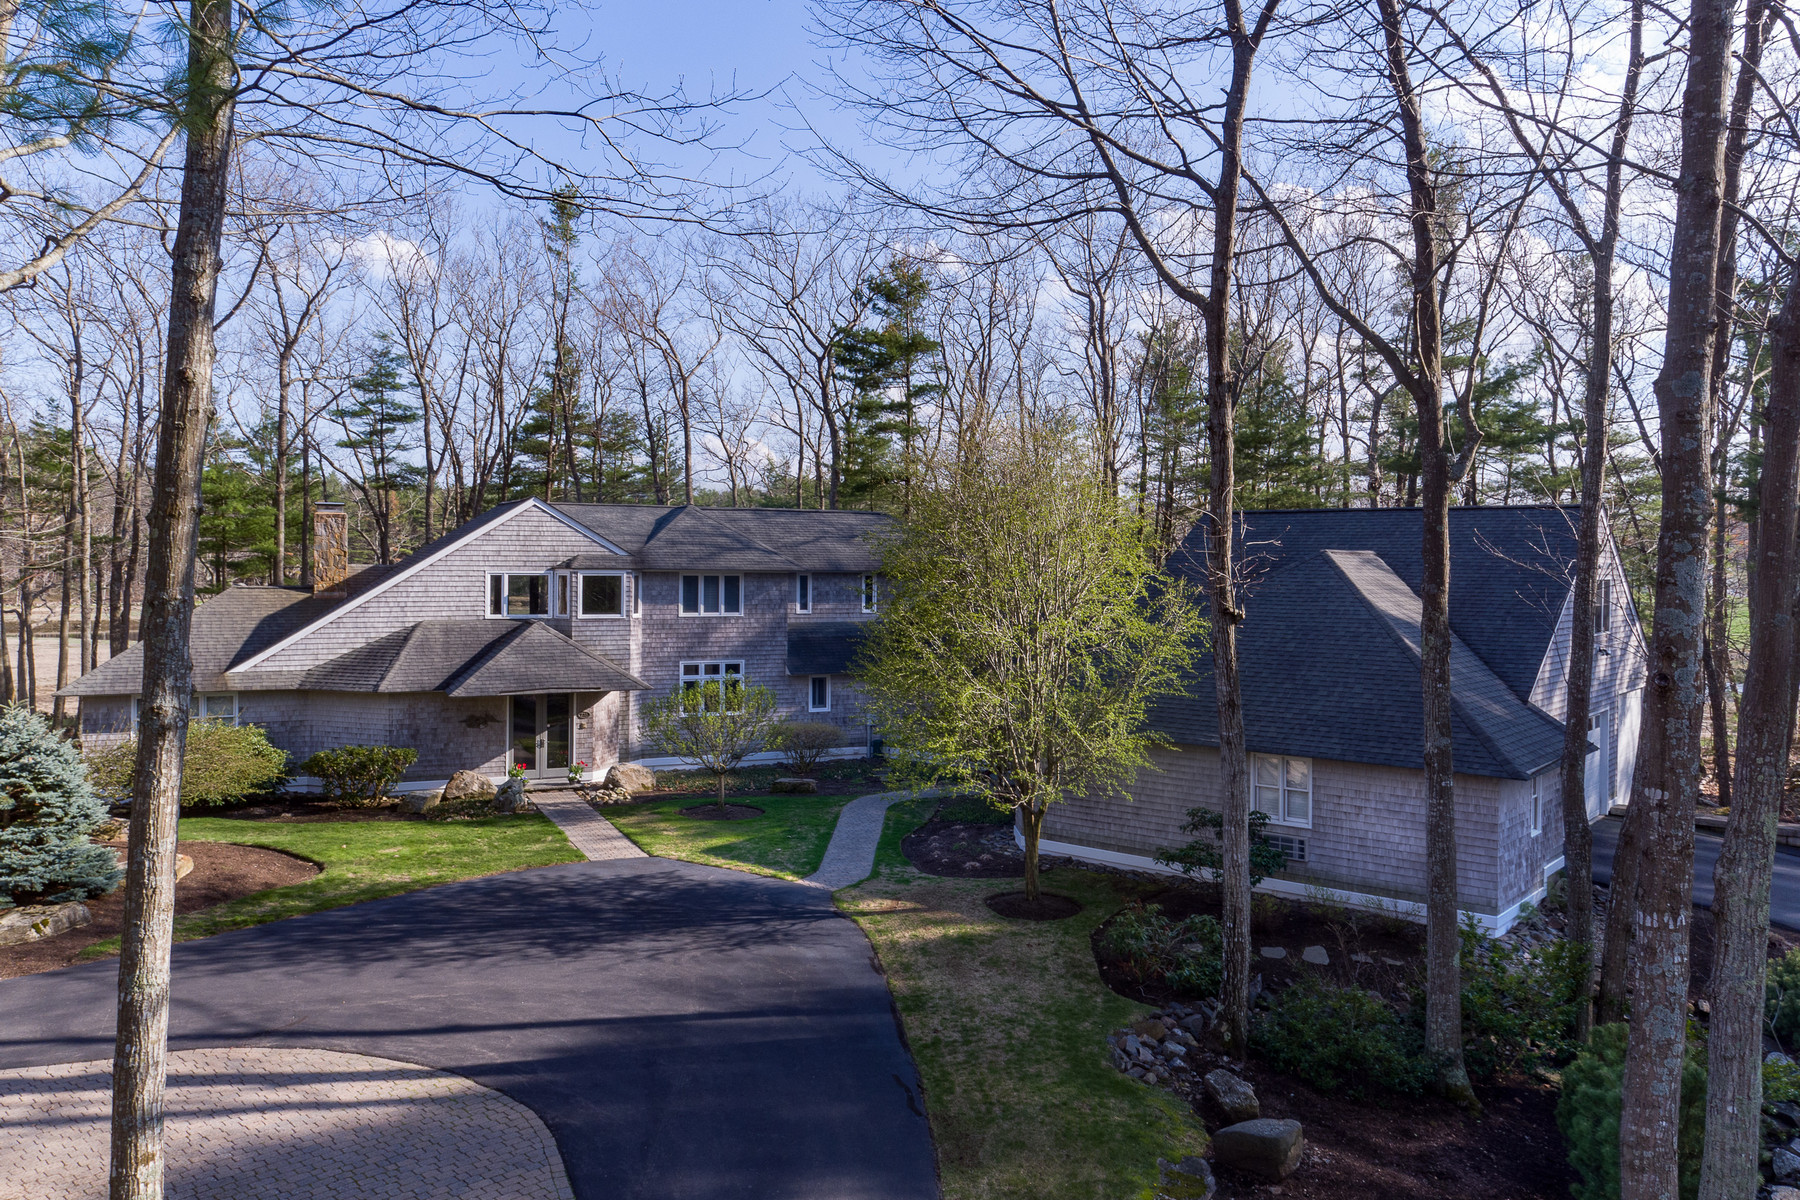 Single Family Home for Sale at Private Waterfront 8 Acre Compound 235 Pioneer Road Rye, New Hampshire, 03870 United States